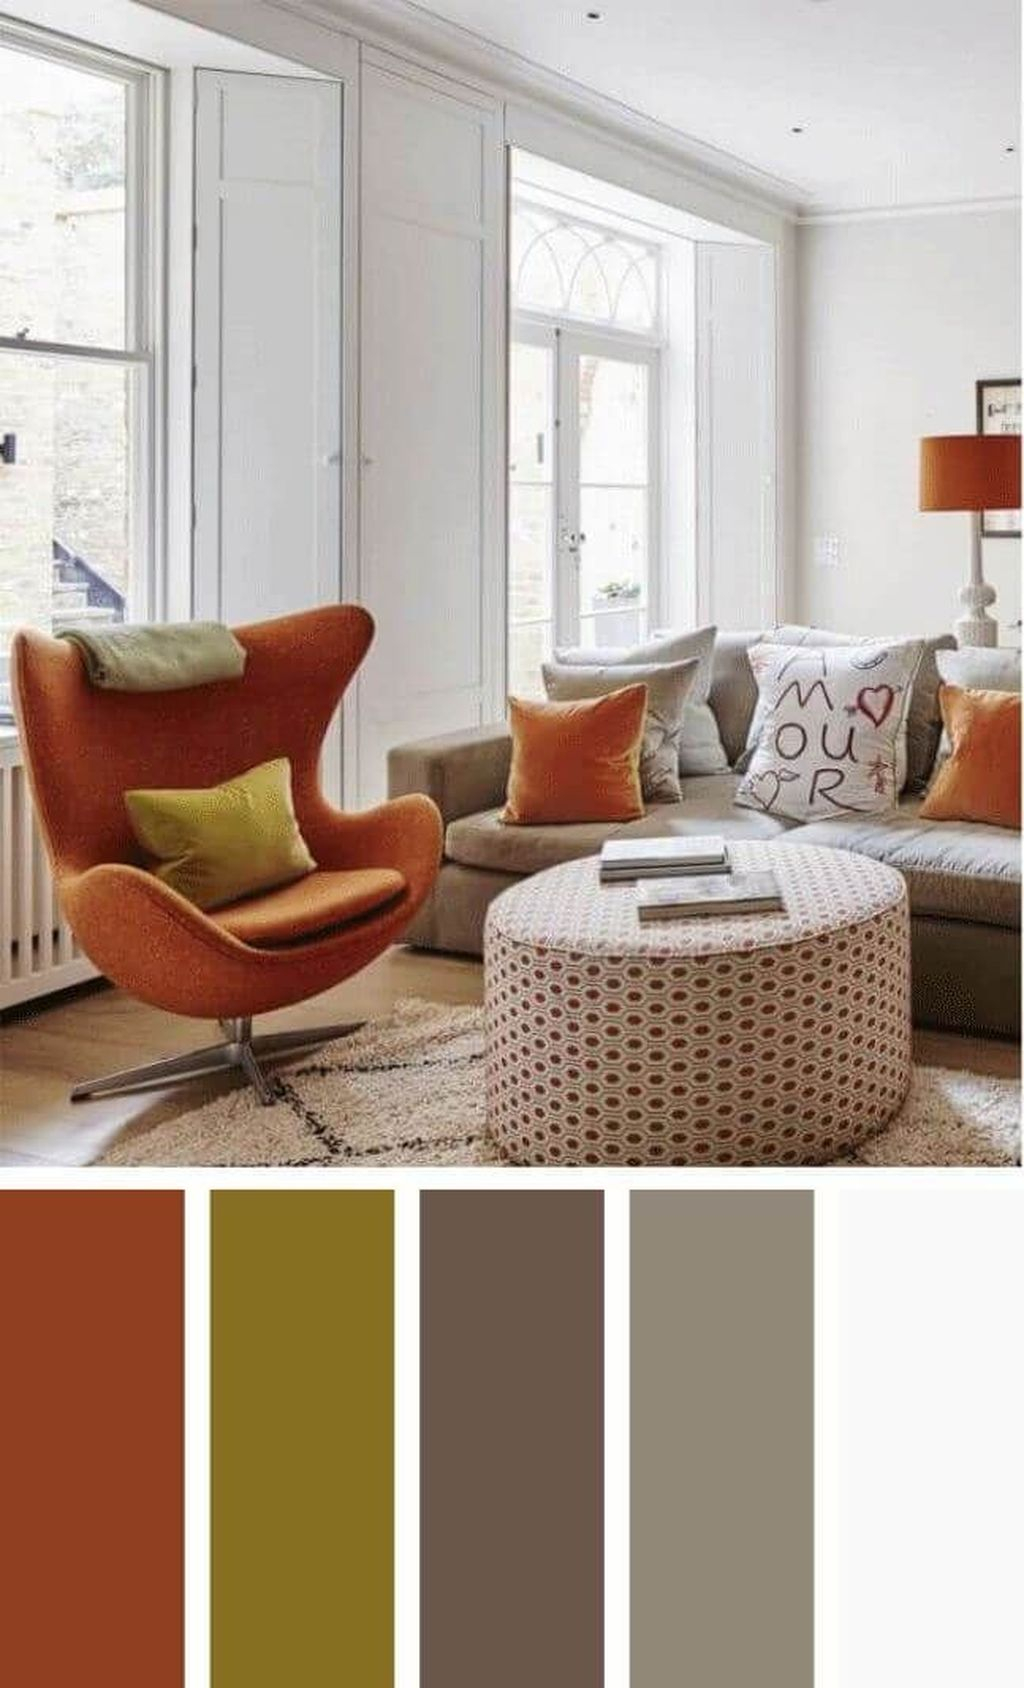 41 Inspiring Living Room Color Schemes Ideas Will Make Space ...